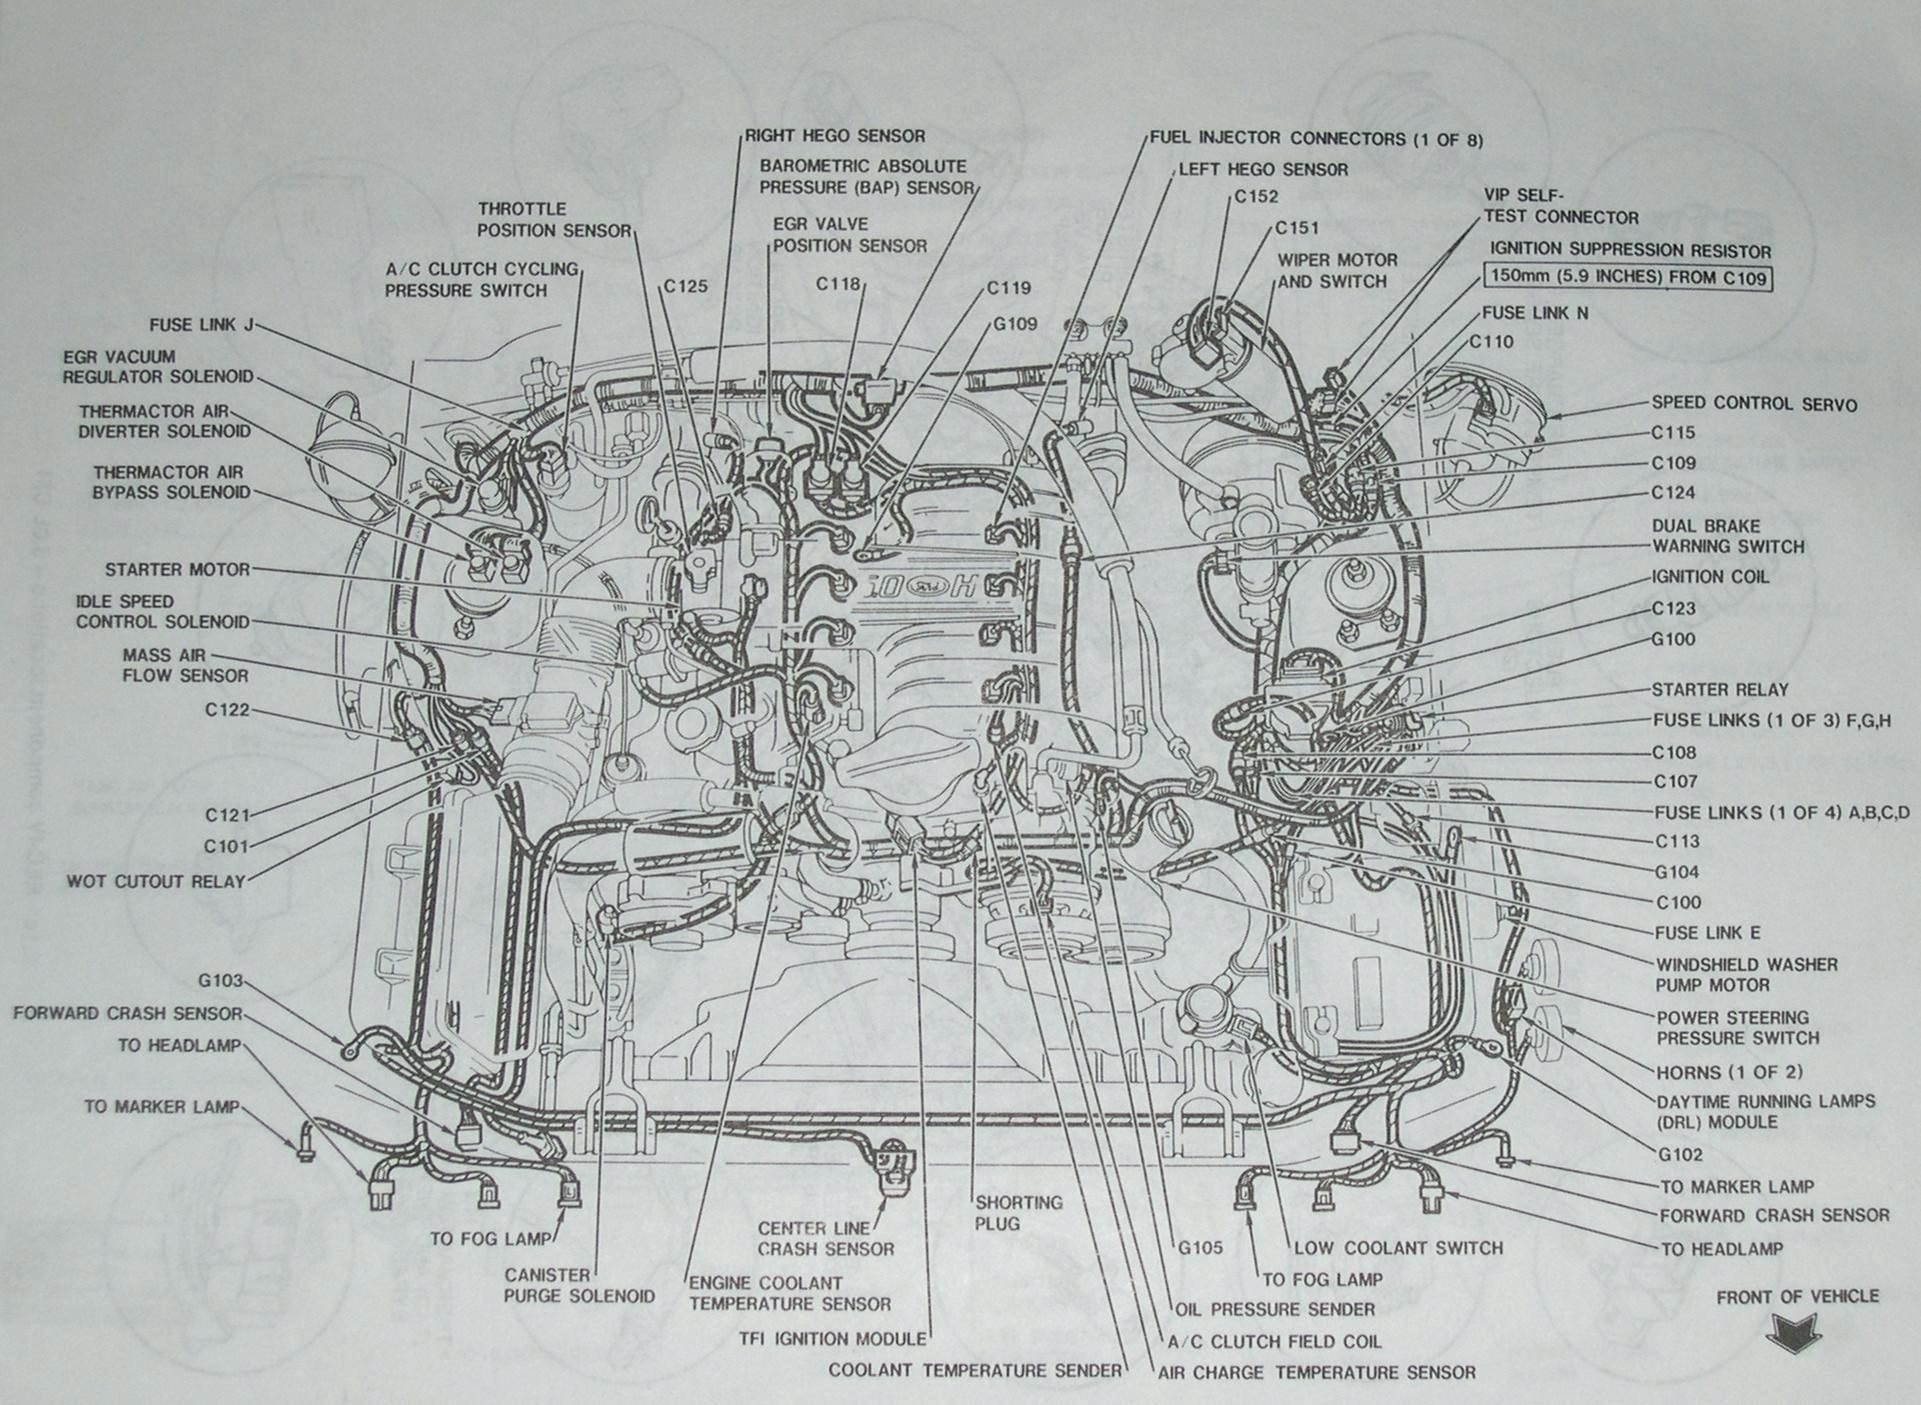 hight resolution of 95 mustang engine diagram wiring diagram priv 1995 ford mustang 5 0 engine diagram wiring